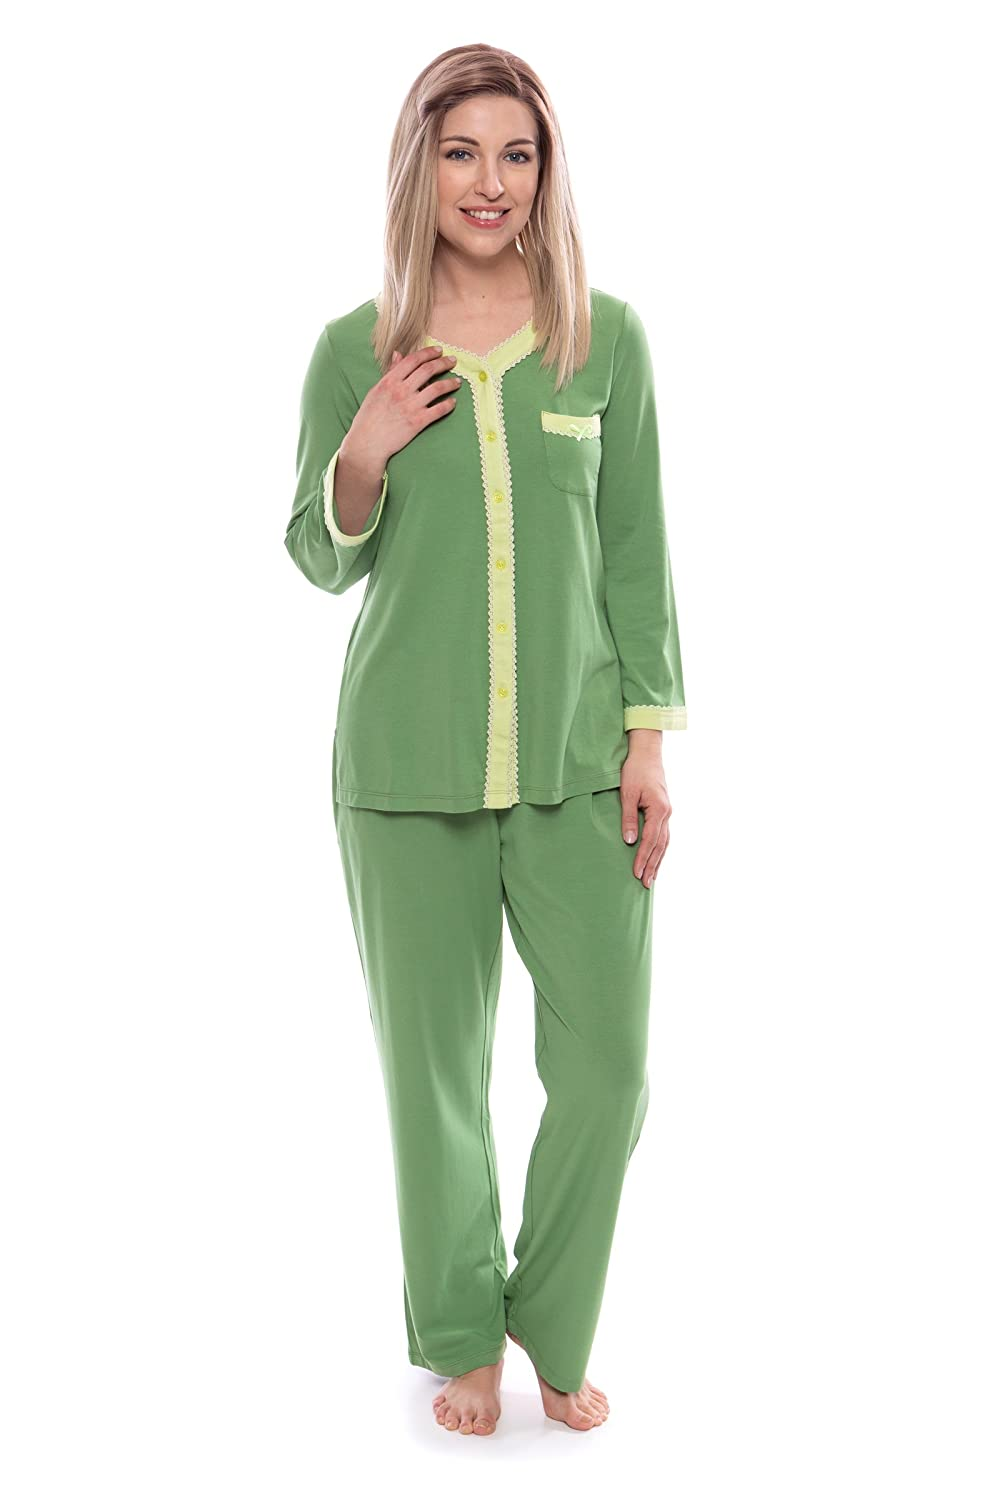 ad94052ef6 Women s Long Sleeve Pajama Set - Button Up Sleepwear by Texere (Eco  Nirvana) at Amazon Women s Clothing store